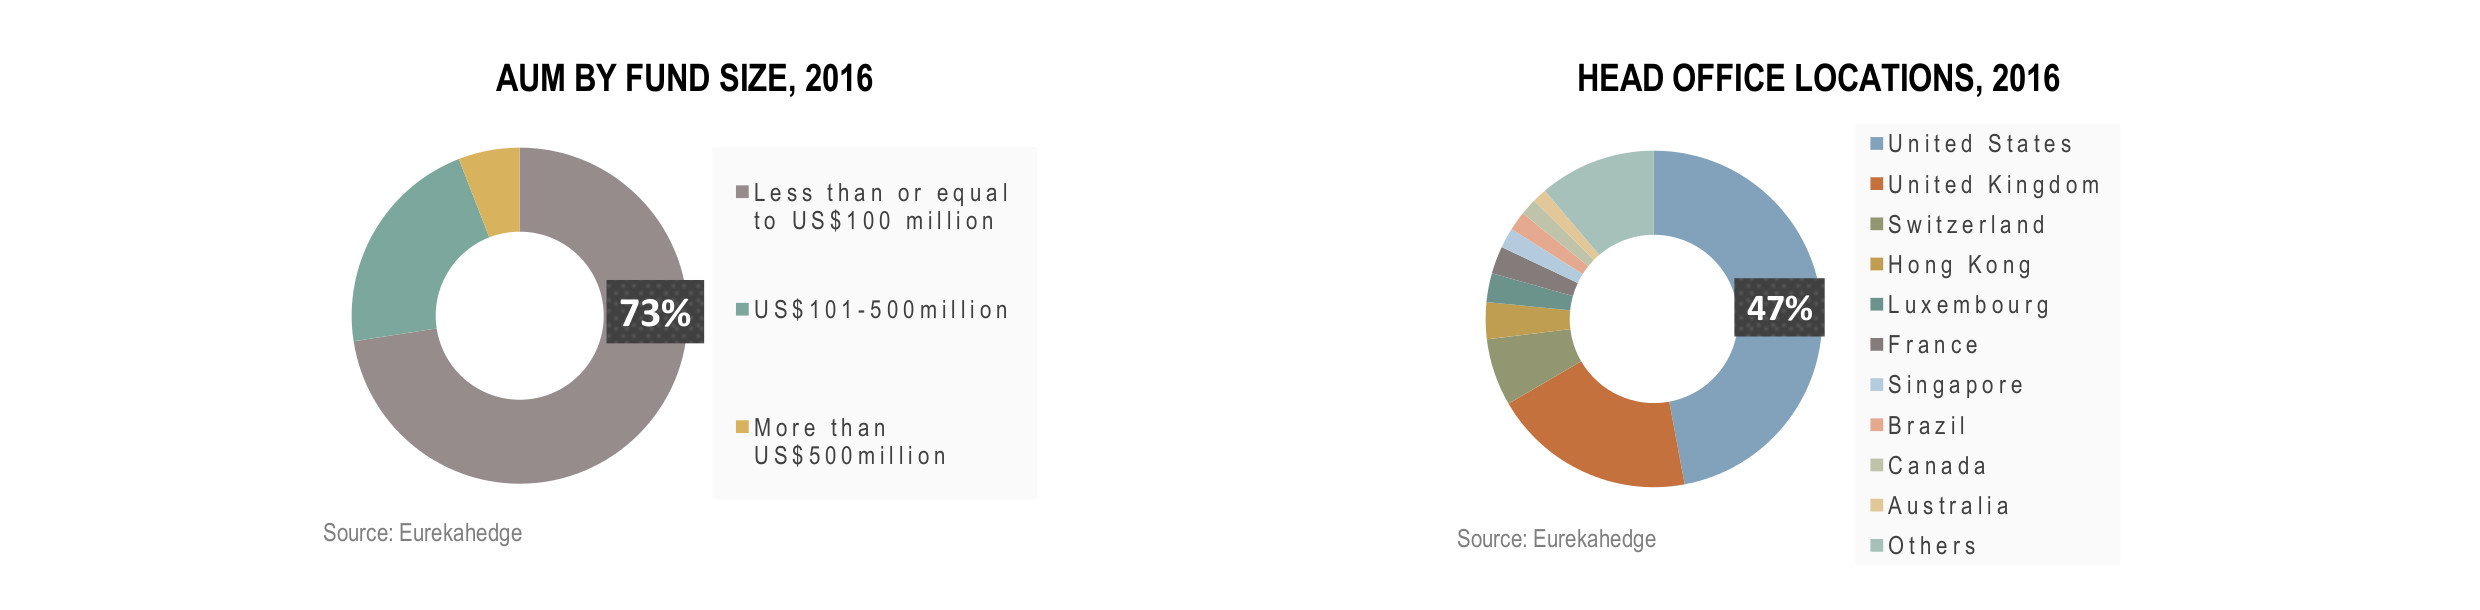 Global Hedge Funds Infographic January 2017 - AUM by fund size and head office locations